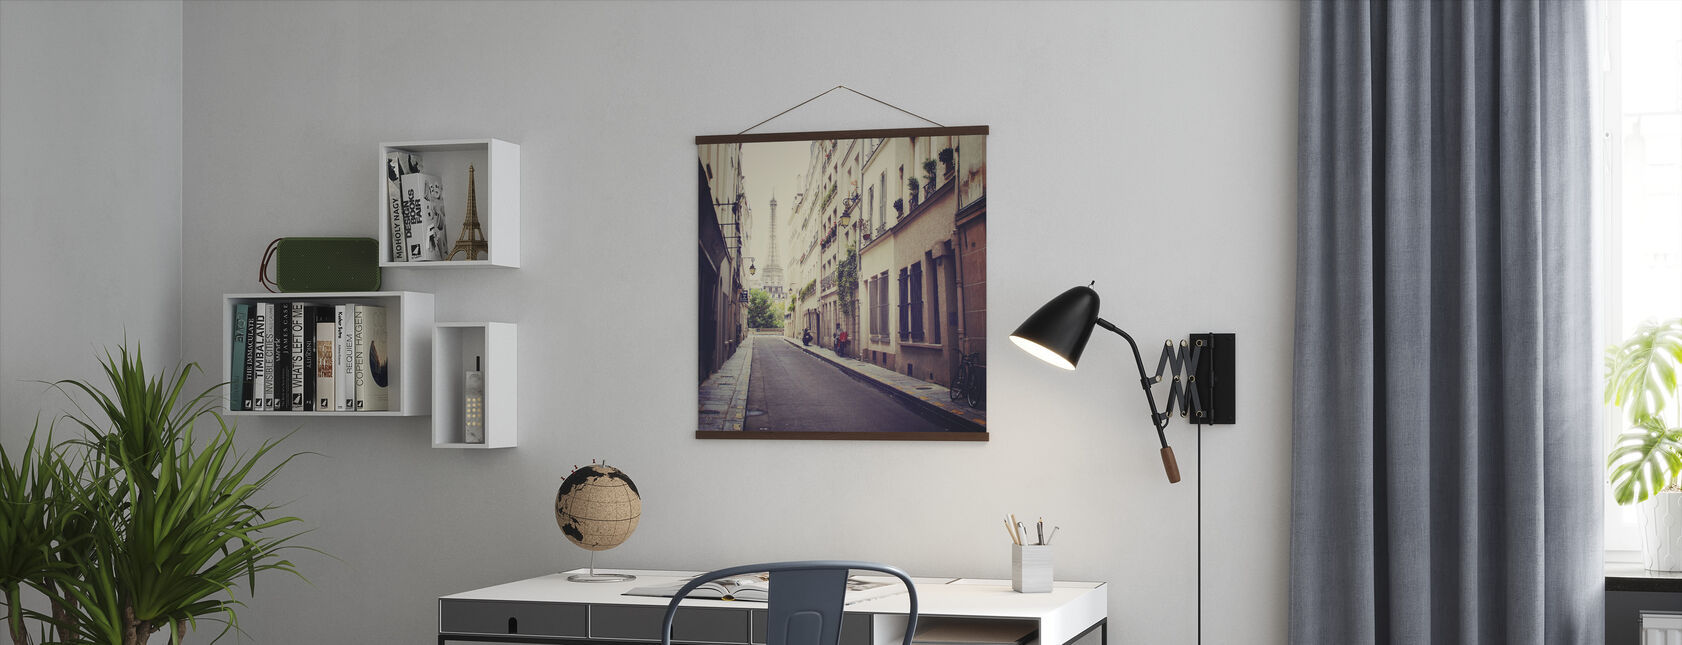 Eiffel Tower - Poster - Office